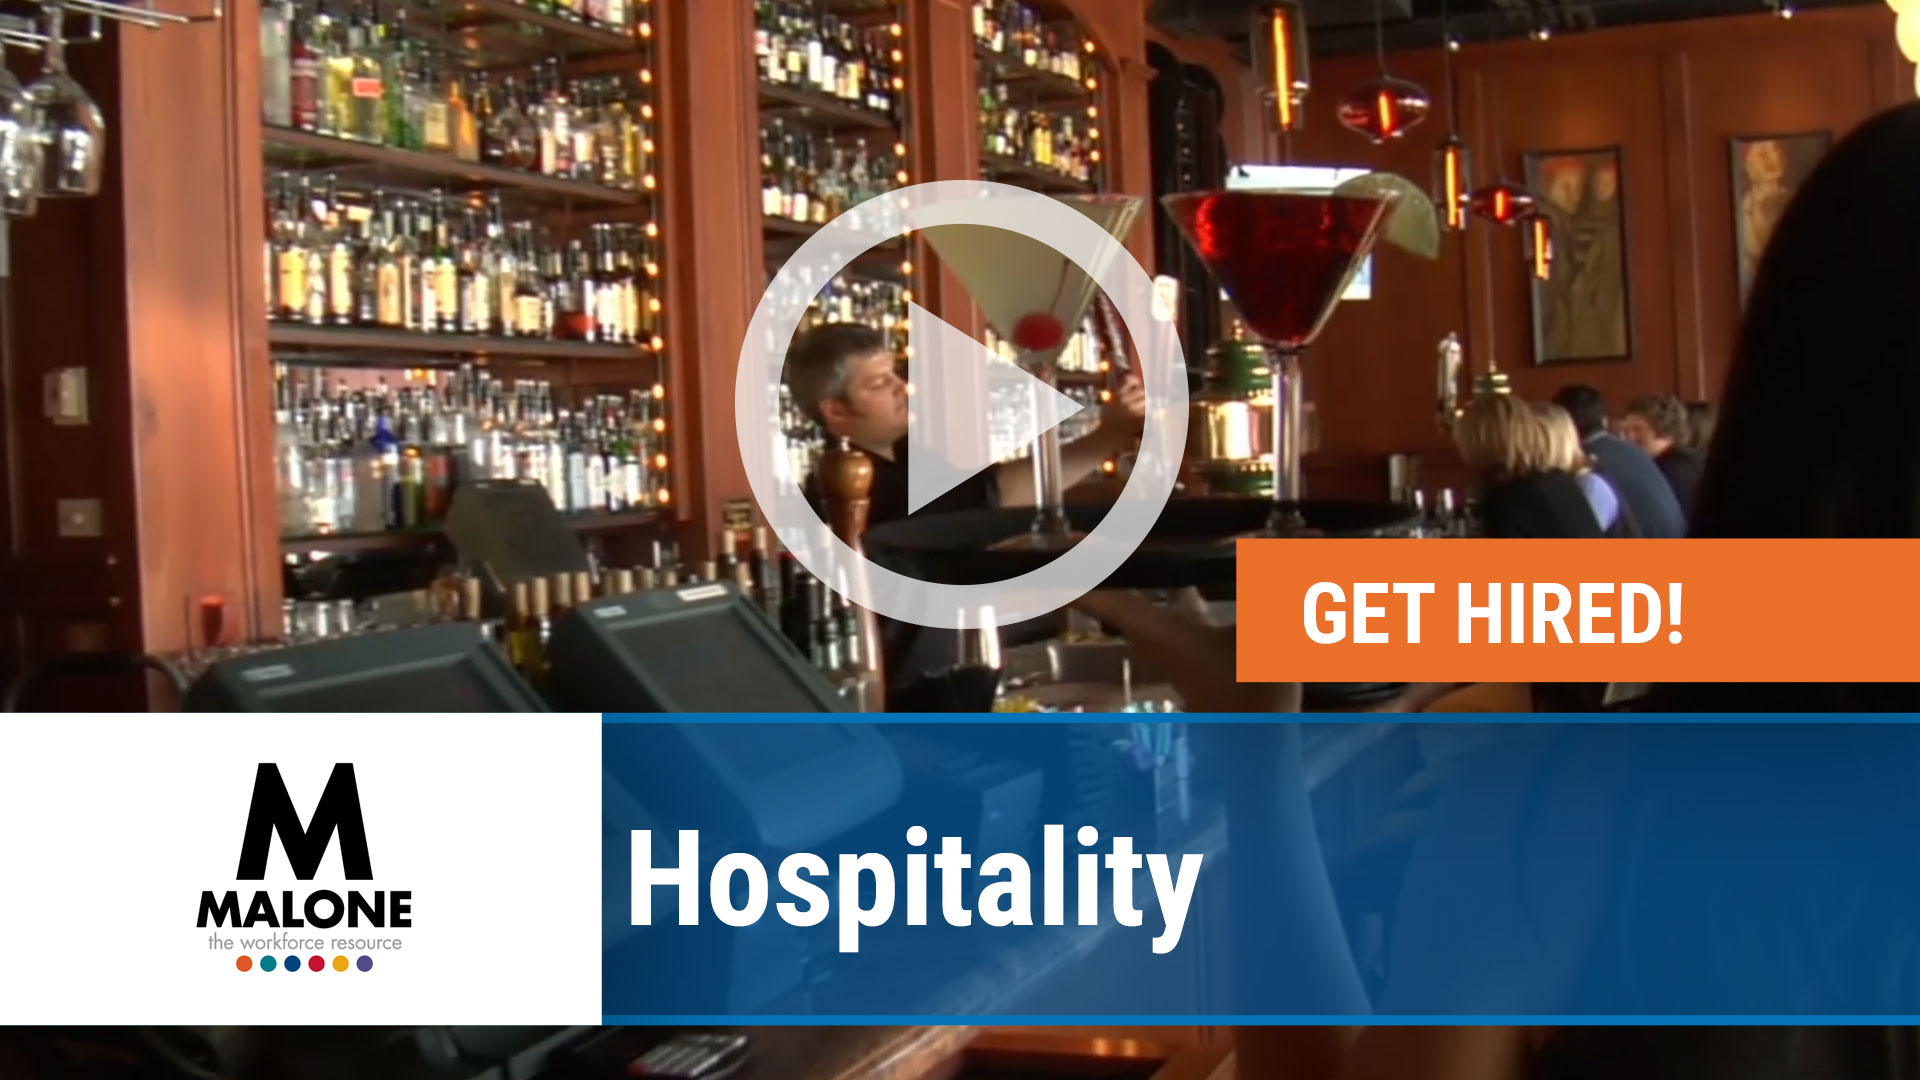 Watch our careers video for available job opening Hospitality Jobs in Chicago, Illinois